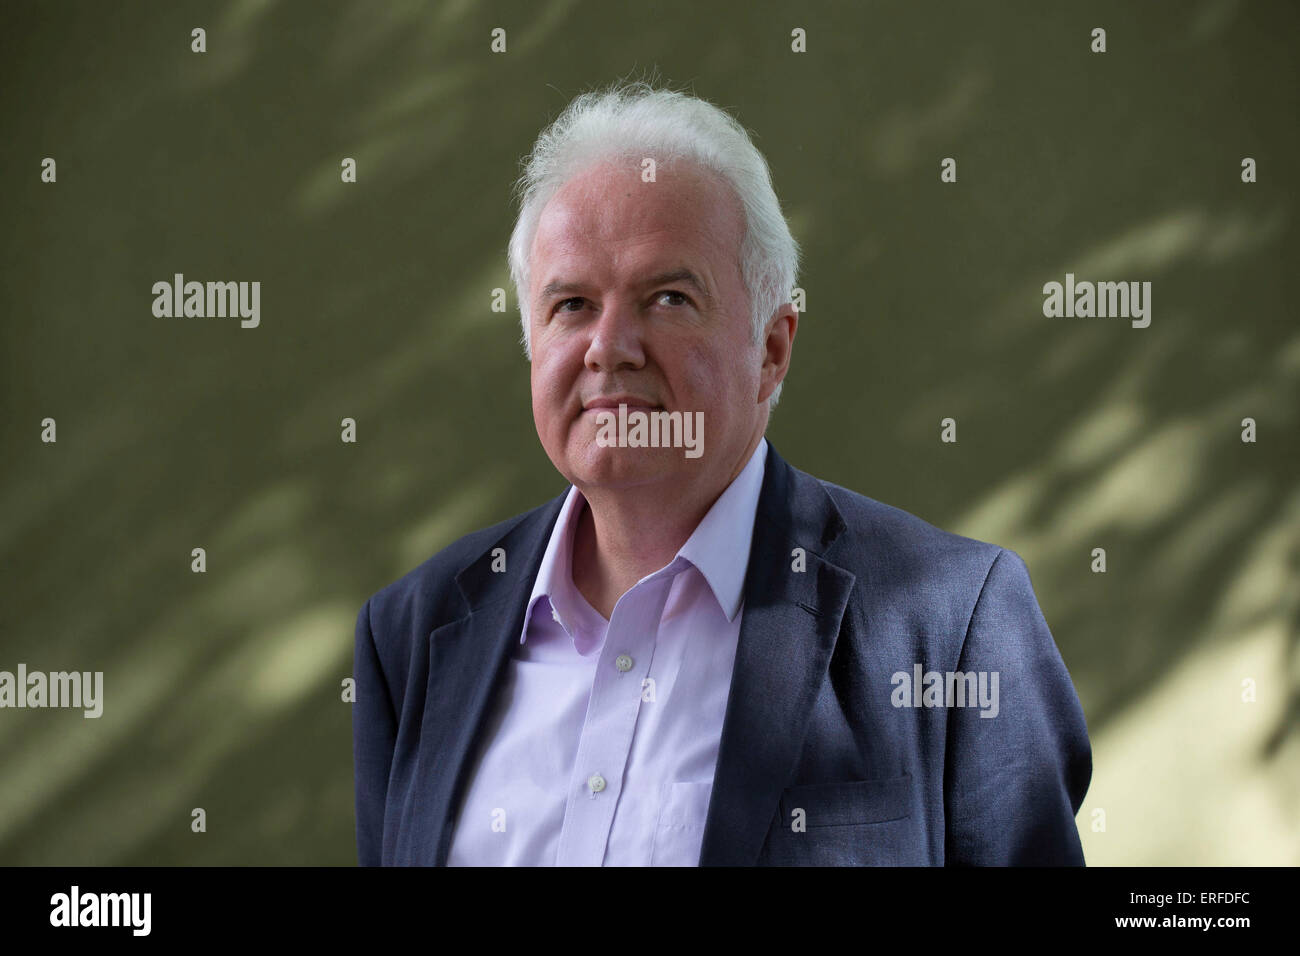 21st August 2014. Edinburgh Scotland. Taylor Downing, writer, historian and television producer, gave a talk on - Stock Image